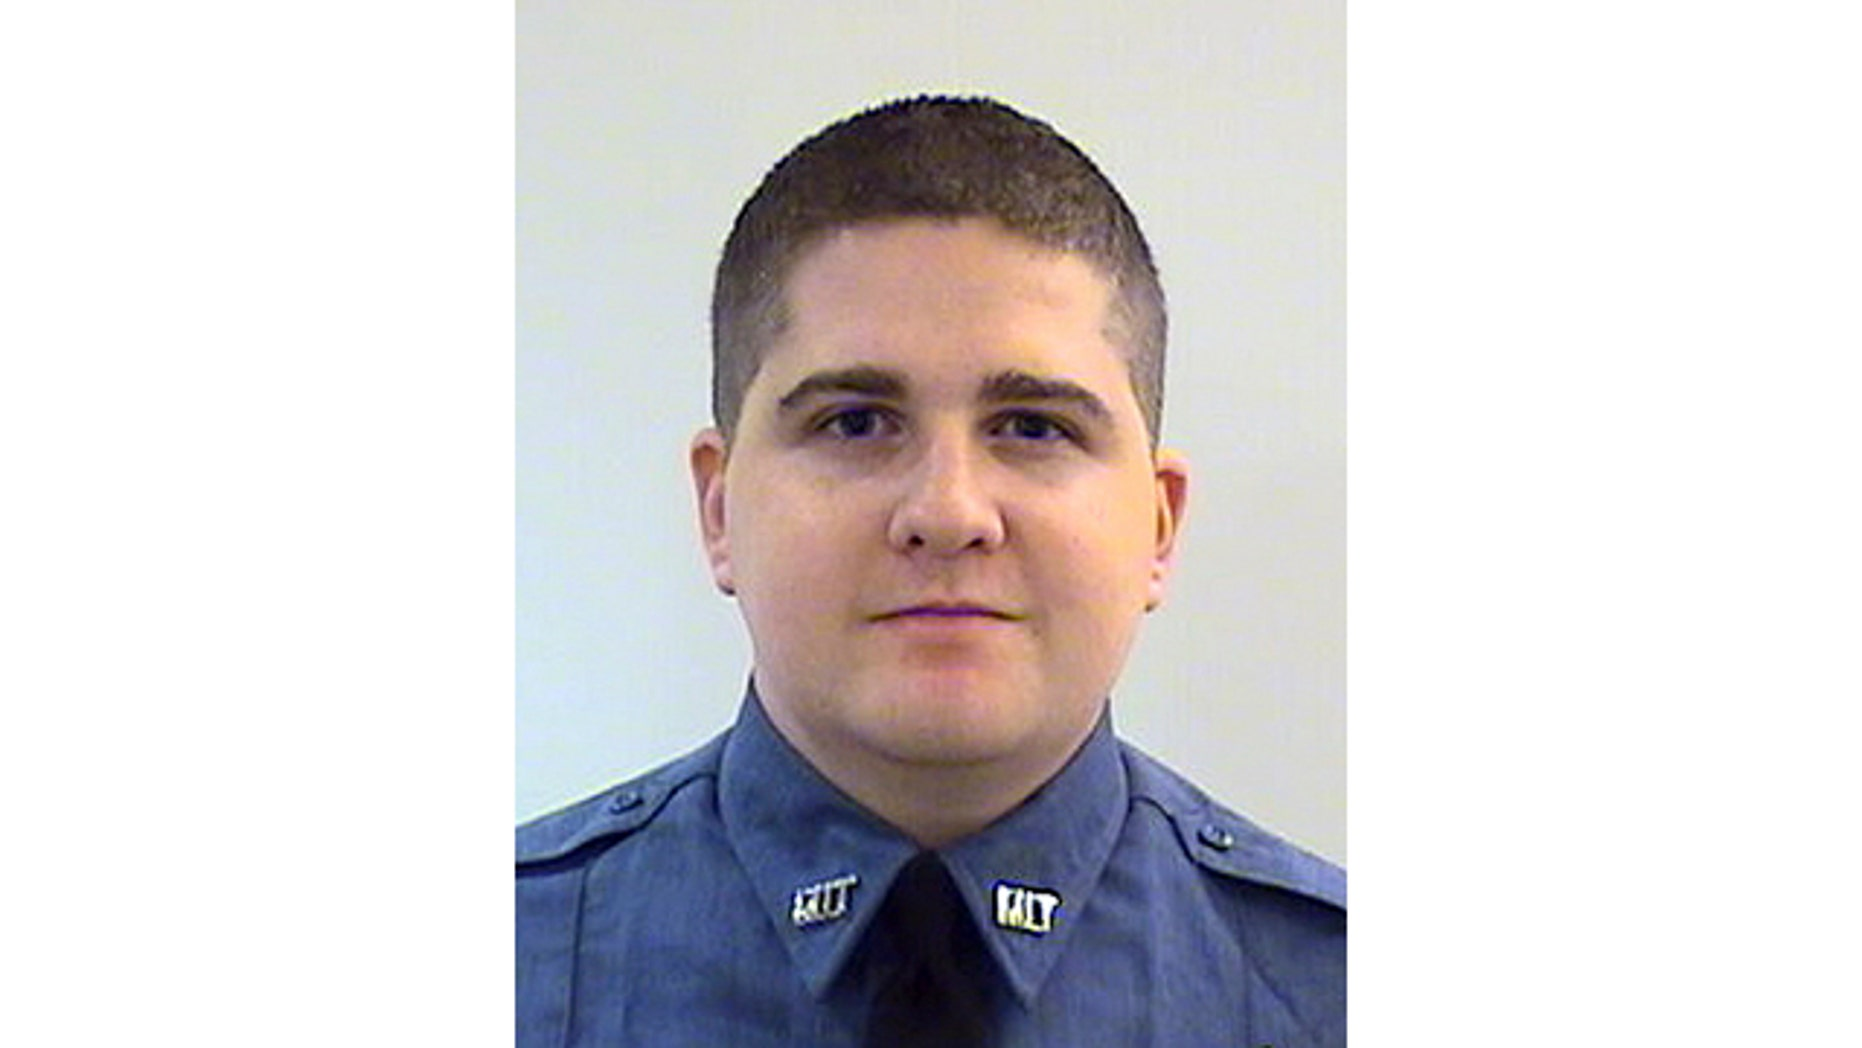 FILE - This undated file photo provided by the Middlesex District Attorney's Office shows Massachusetts Institute of Technology Police Officer Sean Collier, 26, of Somerville, Mass., who was shot to death Thursday, April 18, 2013 on the school campus in Cambridge, Mass. (AP Photo/Middlesex District Attorney's Office, File)